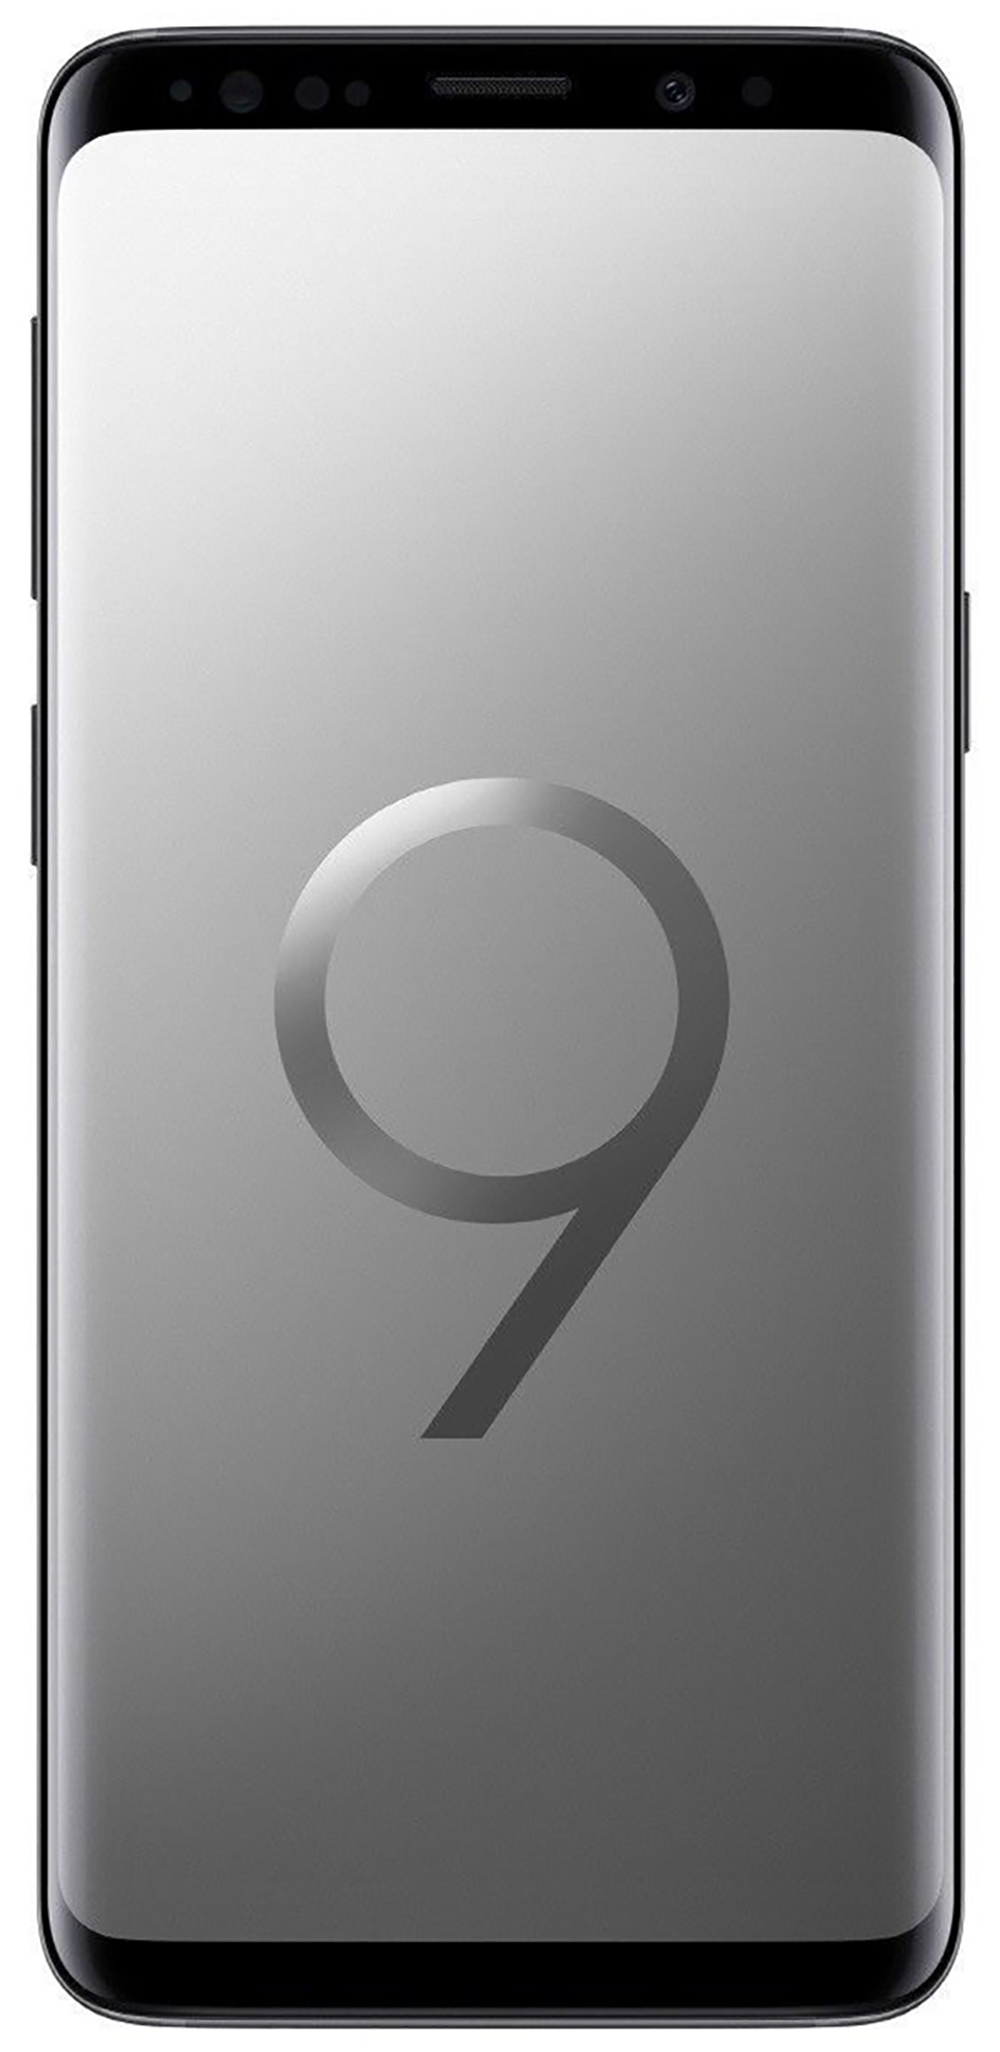 Samsung Galaxy S9 G9600 64GB Unlocked GSM 4G LTE Phone Titanium Gray (International Version) by Samsung